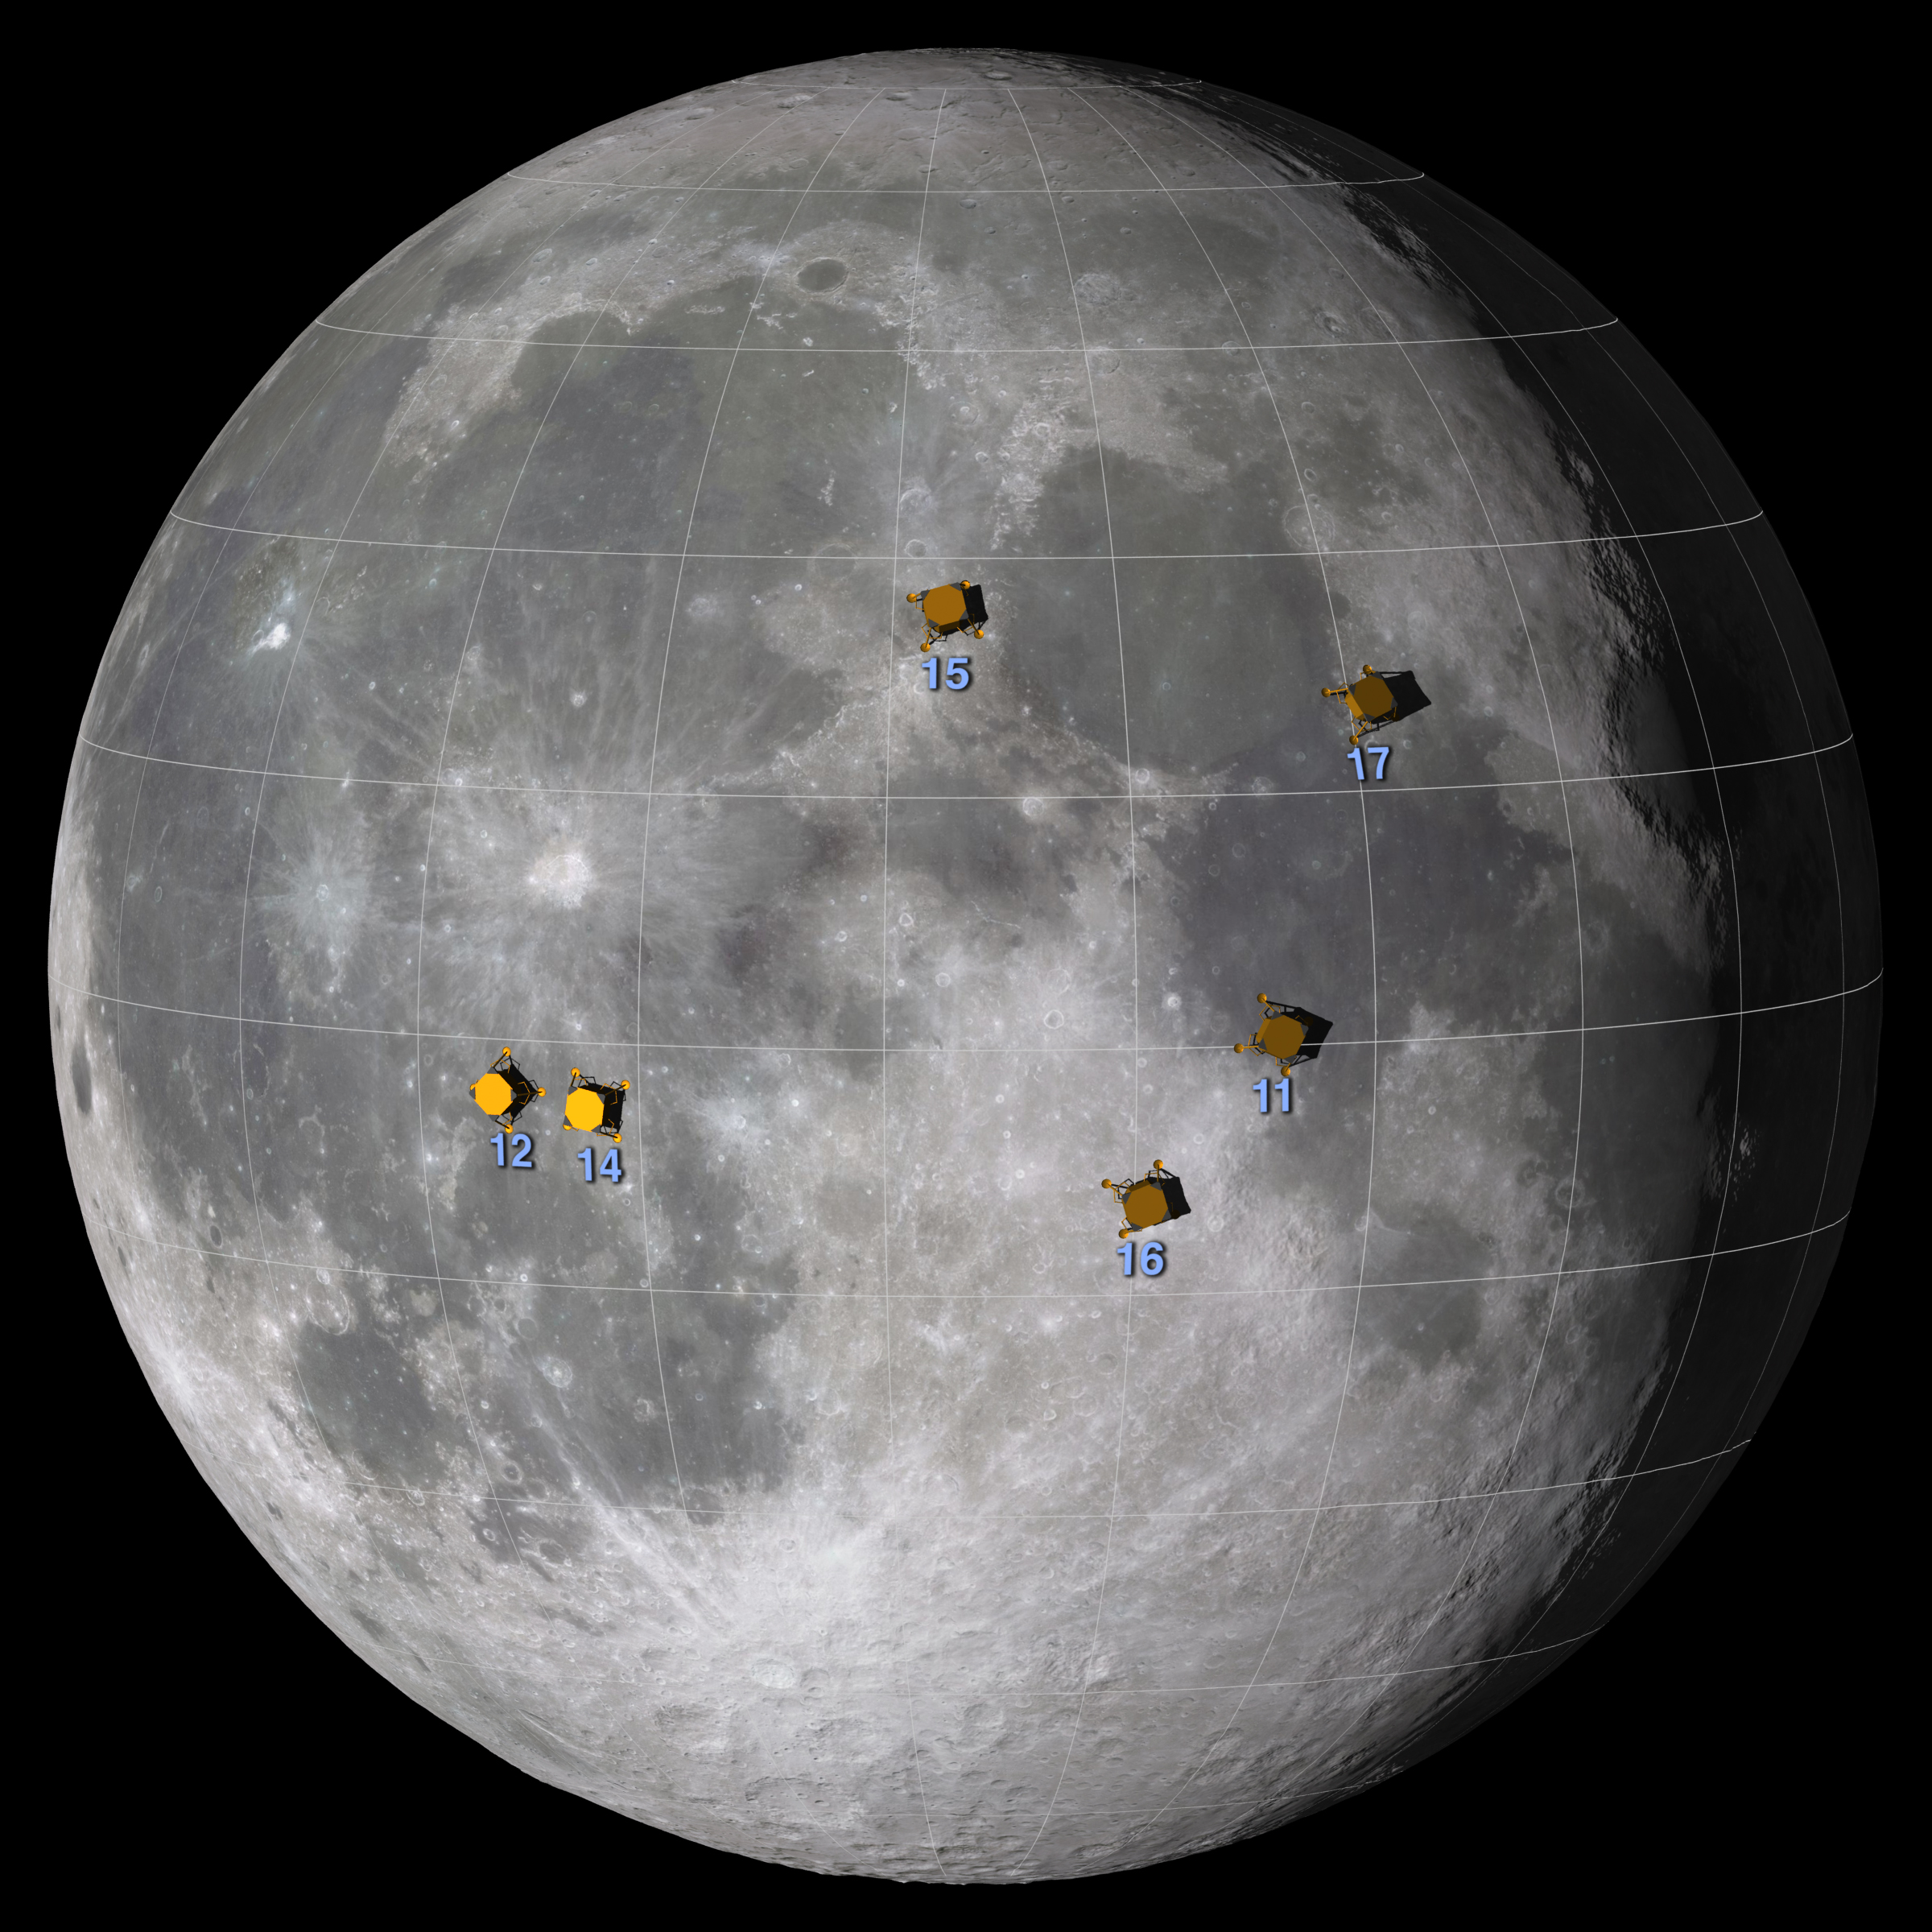 File:Apollo Landings by Nasa.jpg